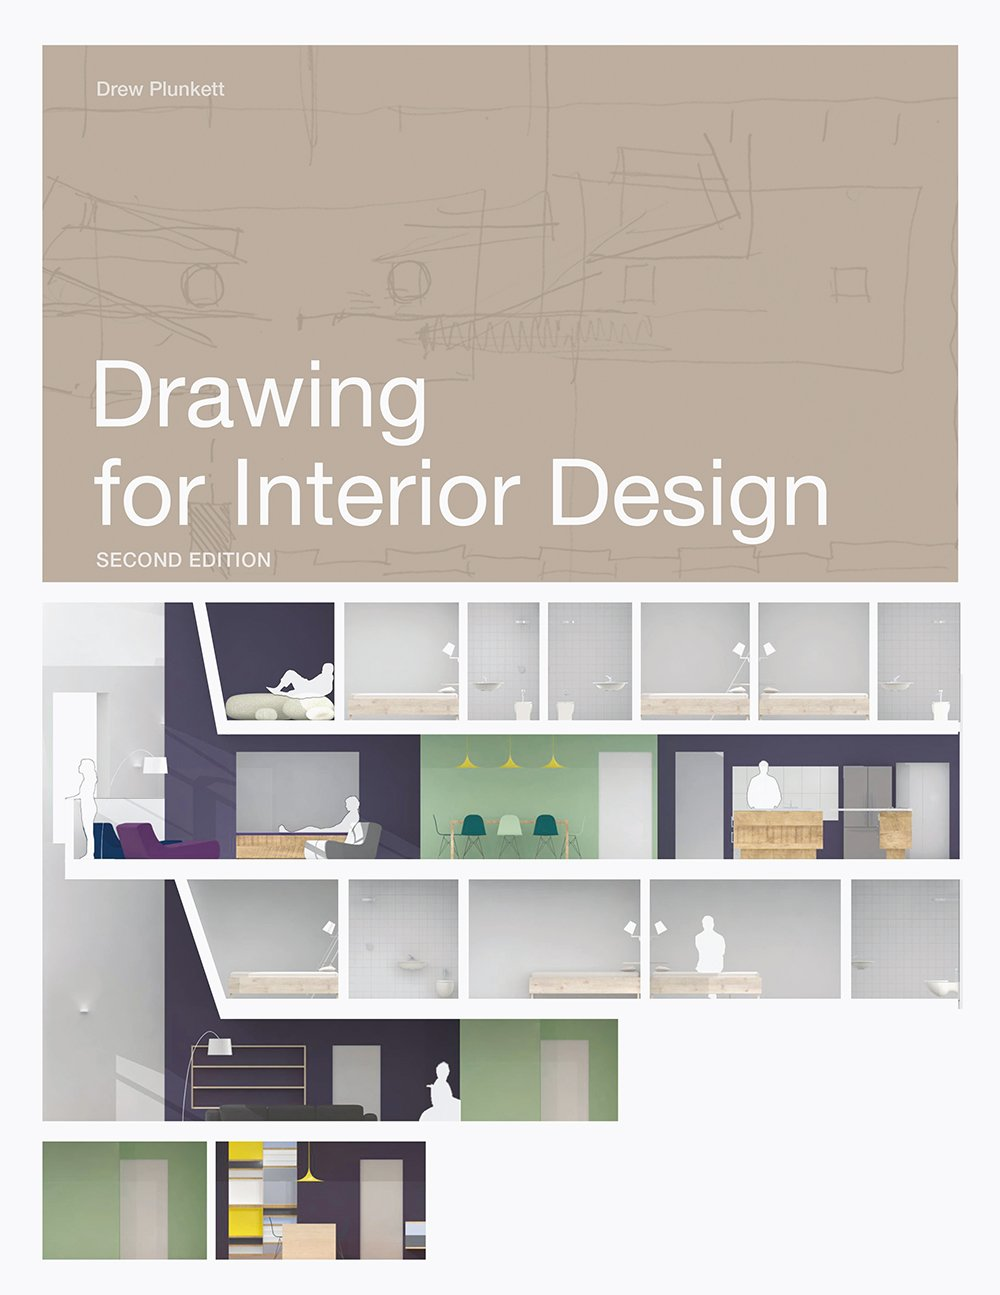 Drawing For Interior Design Amazoncouk Drew Plunkett 9781780671772 Books